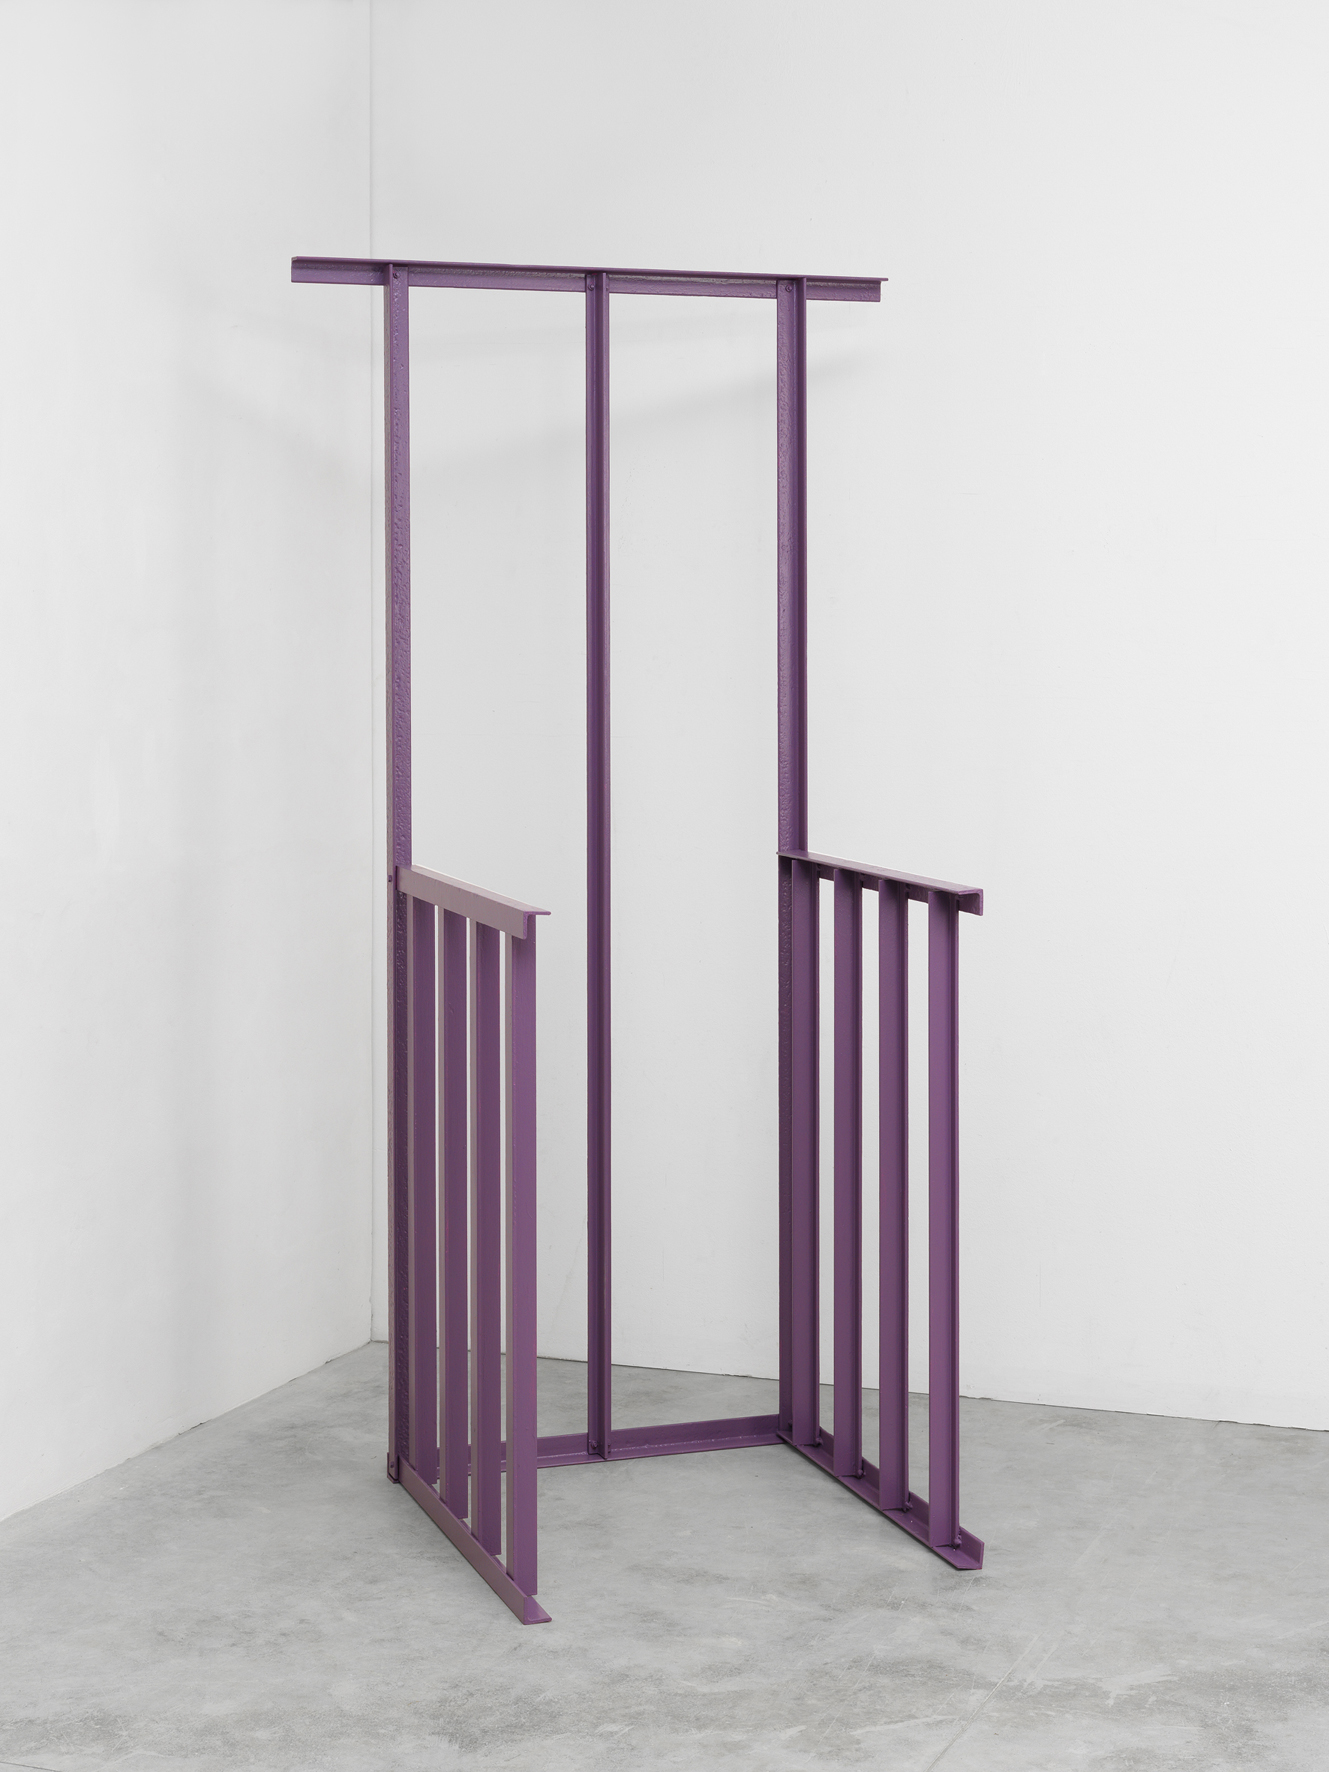 Paolo Icaro - Purple Chair - 1967 - courtesy P420, Bologna